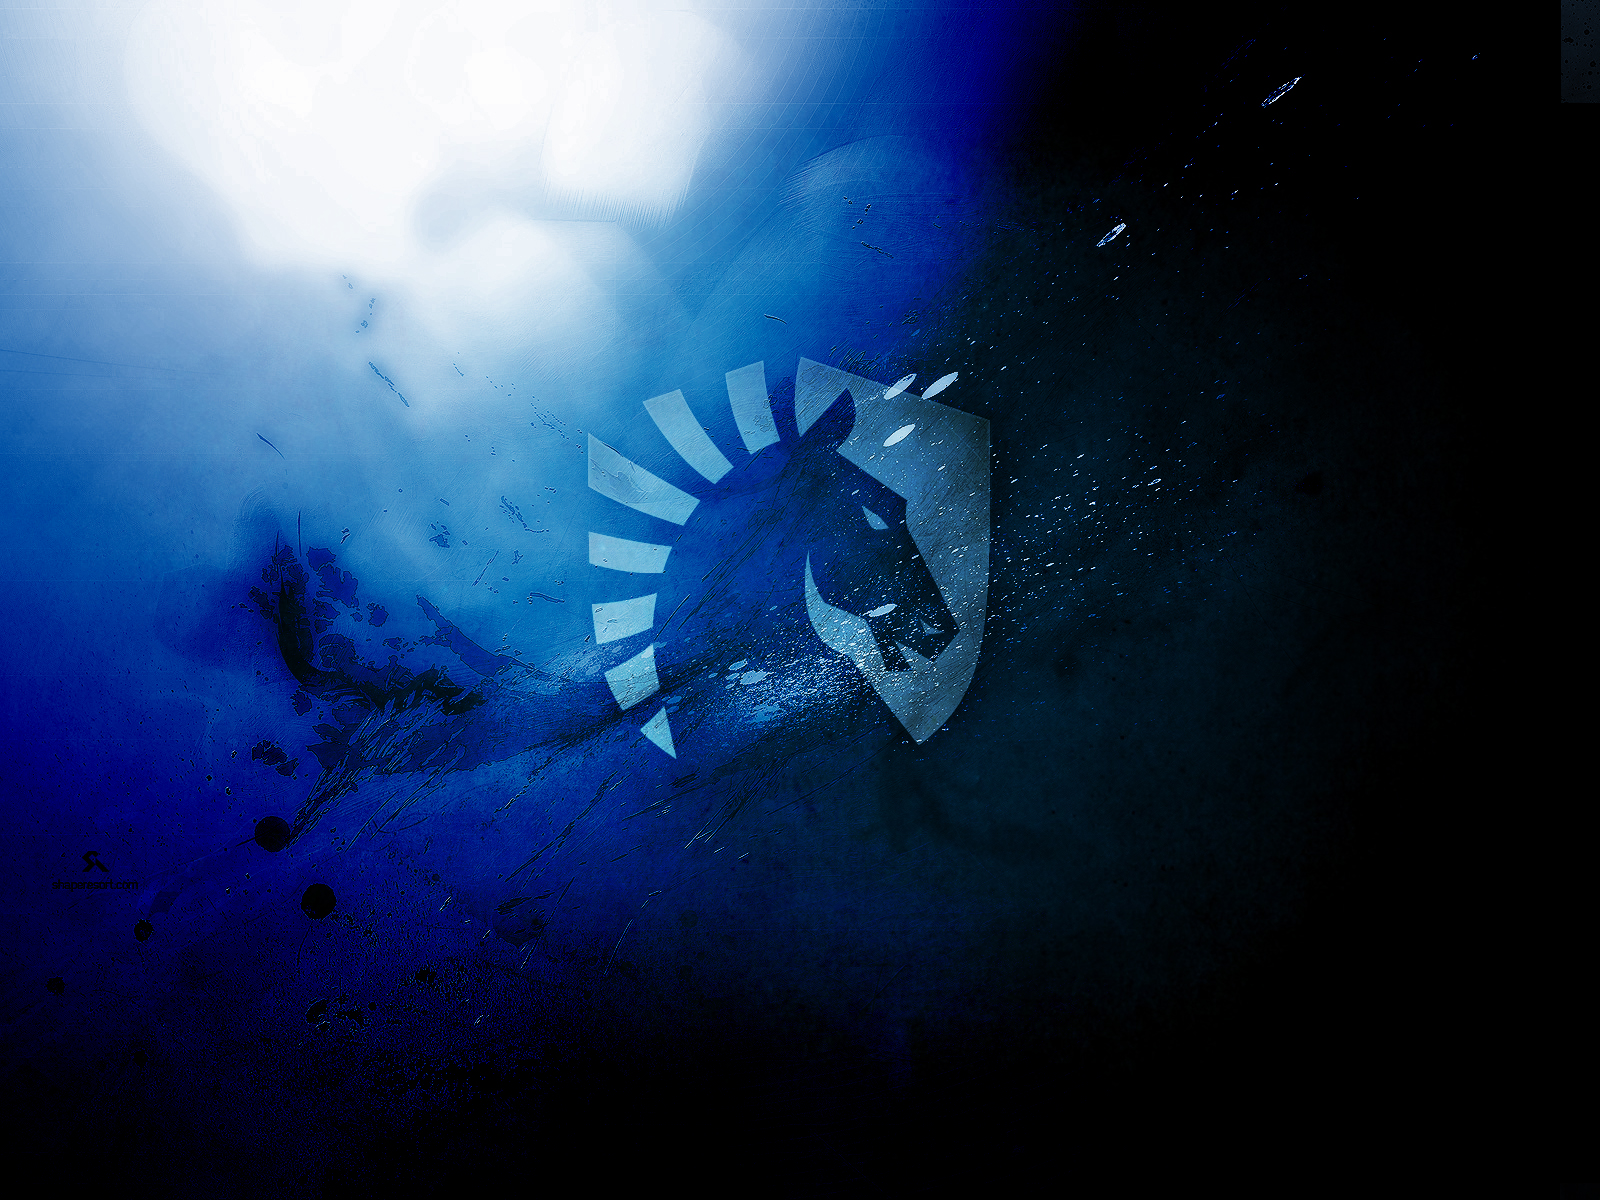 Mac Os X Lion Skyrim Ps3 Wallpaper 1080p Wallpaper